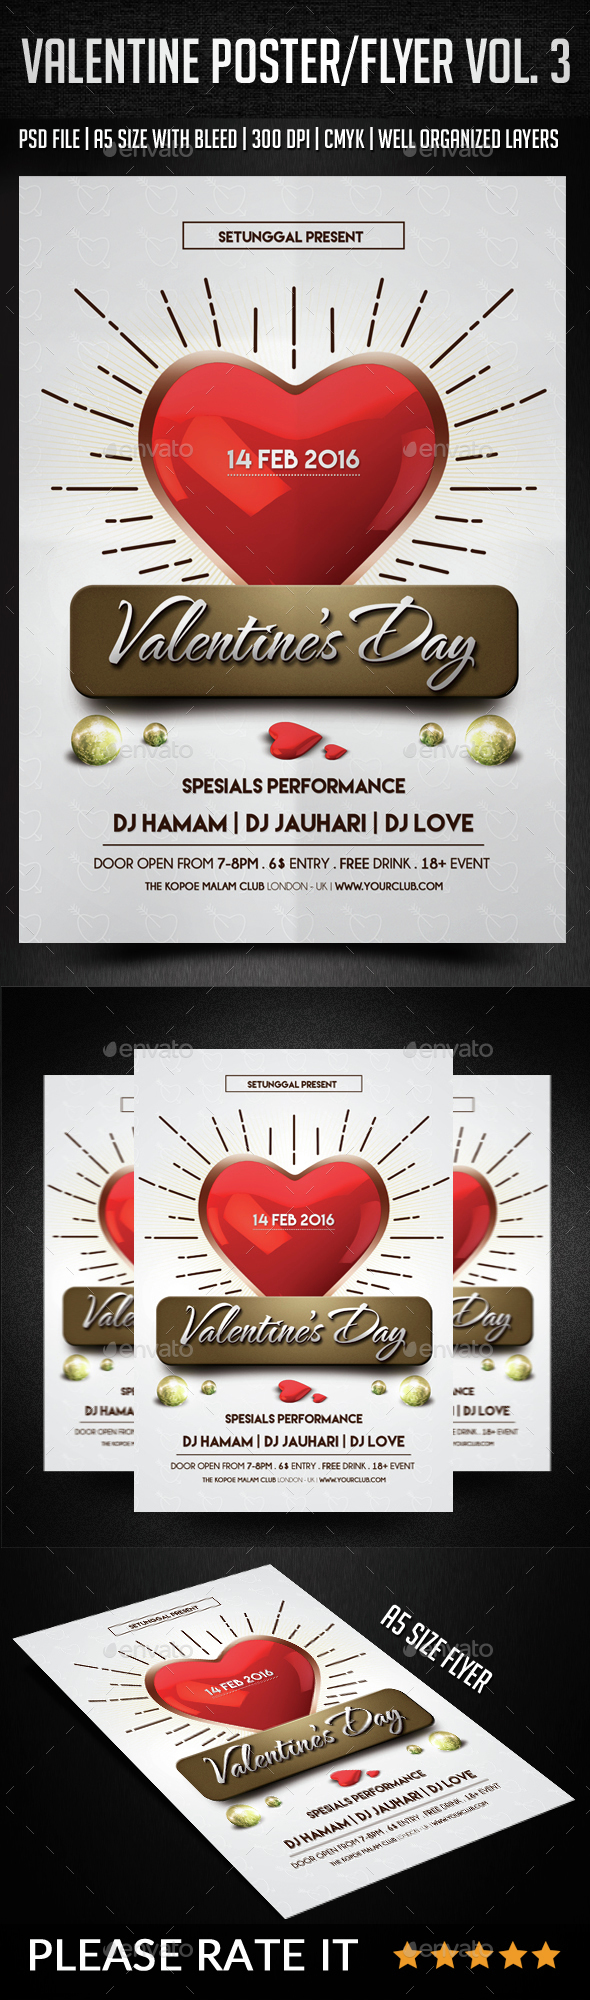 Valentine Poster Flyer Vol. 3 - Events Flyers